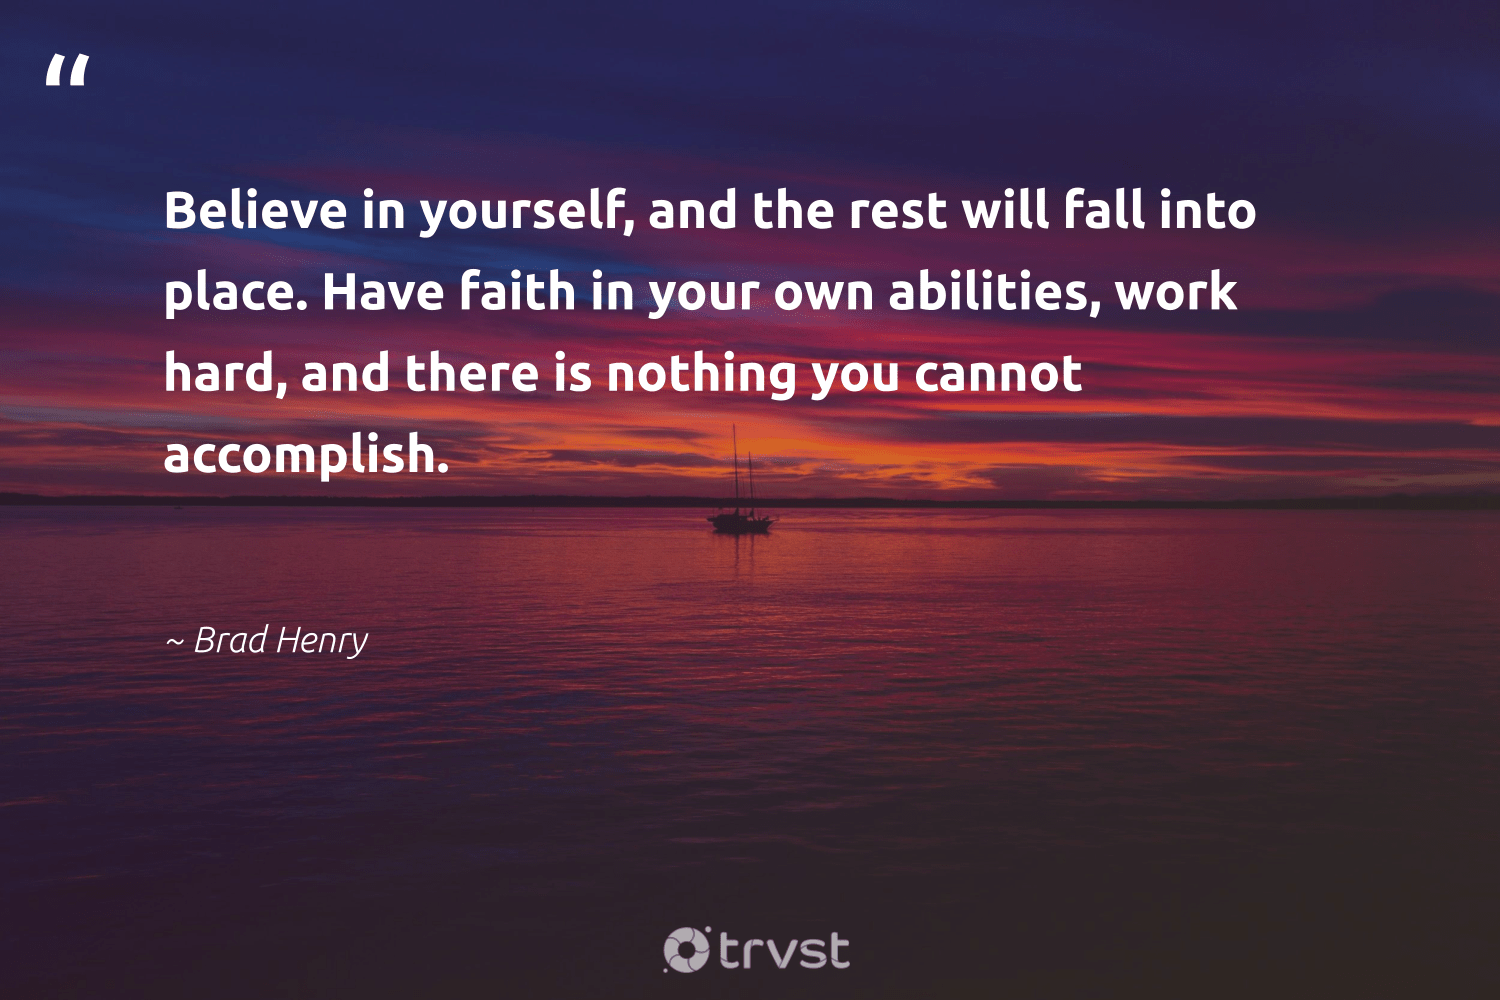 """""""Believe in yourself, and the rest will fall into place. Have faith in your own abilities, work hard, and there is nothing you cannot accomplish.""""  - Brad Henry #trvst #quotes #softskills #takeaction #futureofwork #dosomething #begreat #changetheworld #nevergiveup #impact #socialchange #bethechange"""